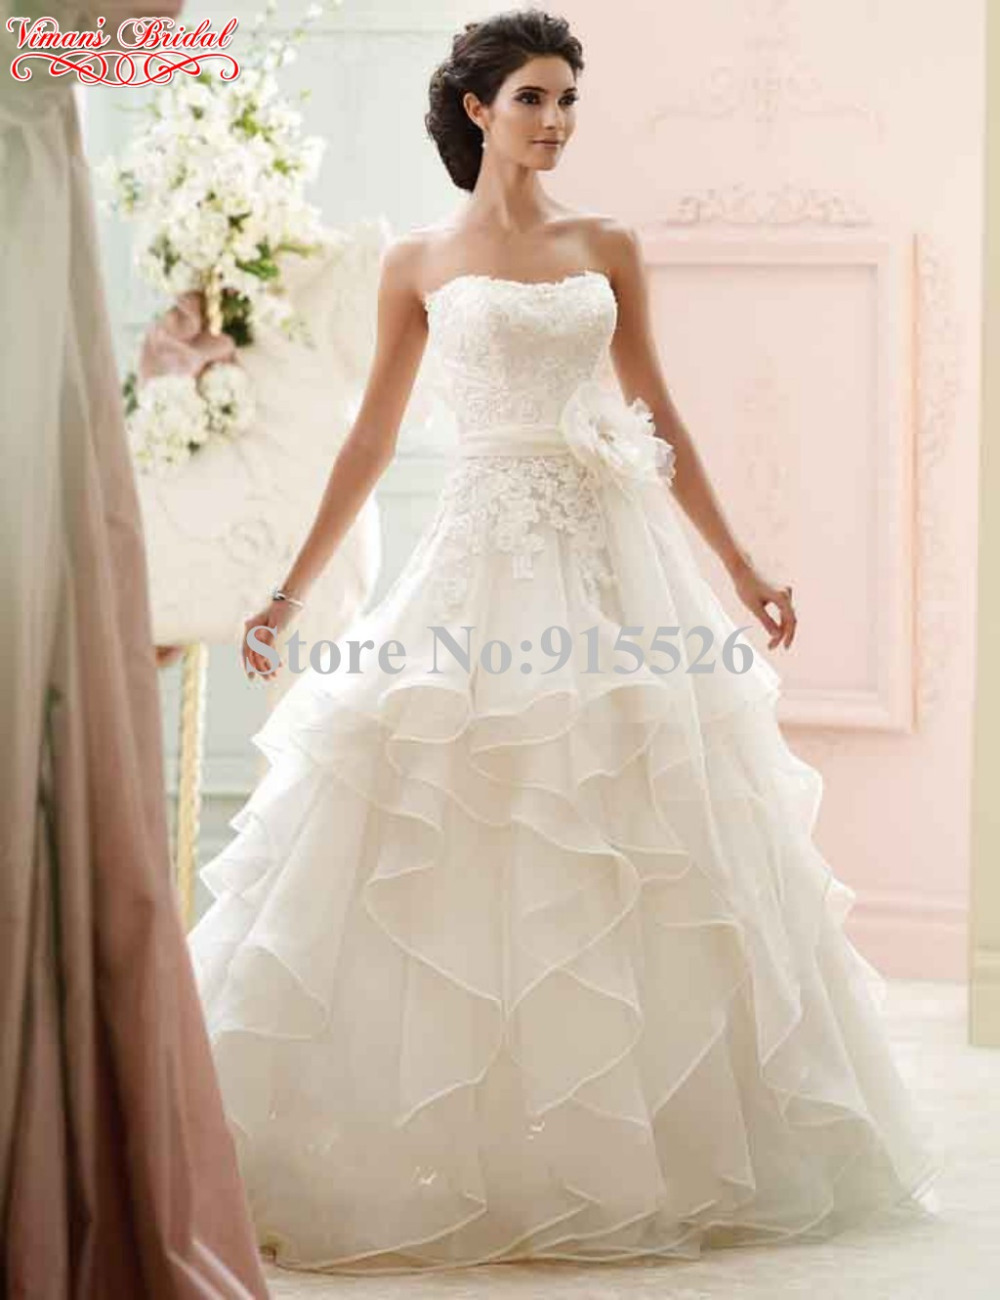 Ball gown wedding dresses lace flower sweetheart ruffles for Lace flower wedding dress